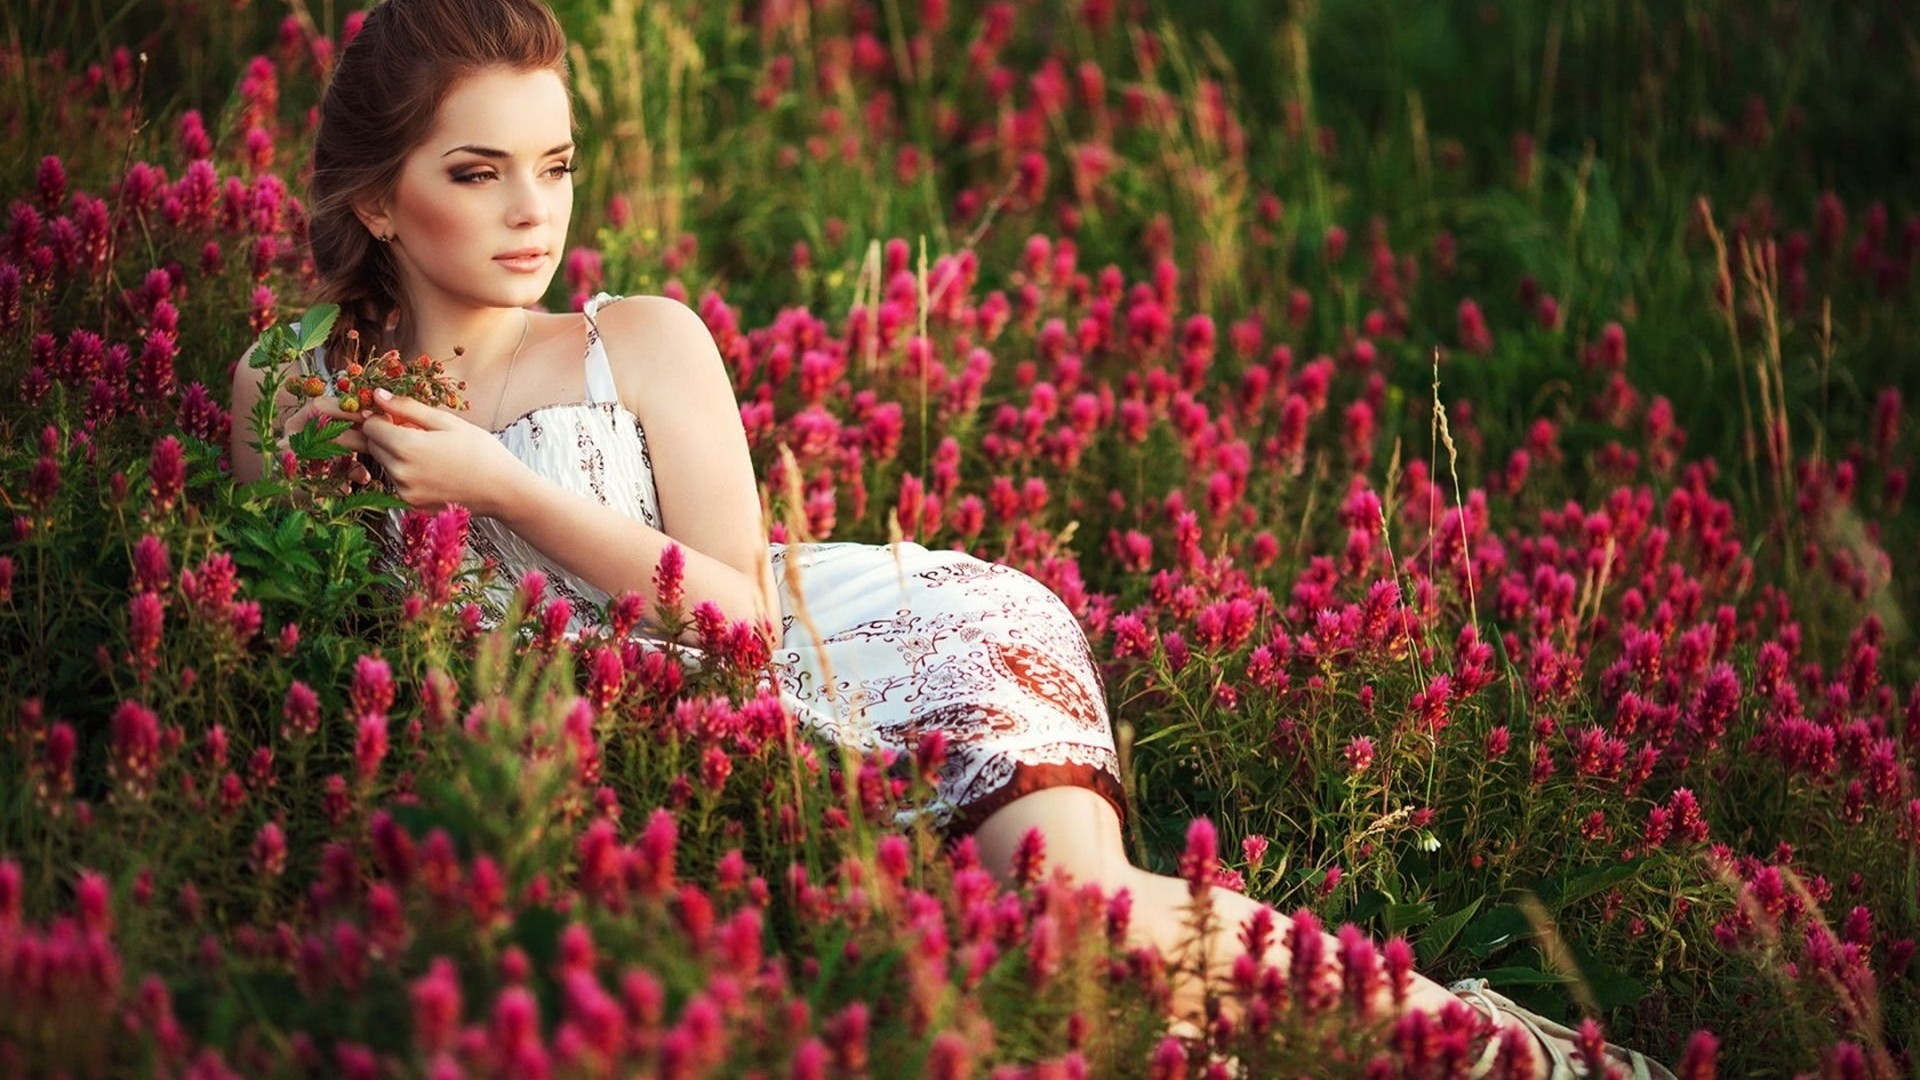 Beautiful Girls With Flower In Hd , HD Wallpaper & Backgrounds